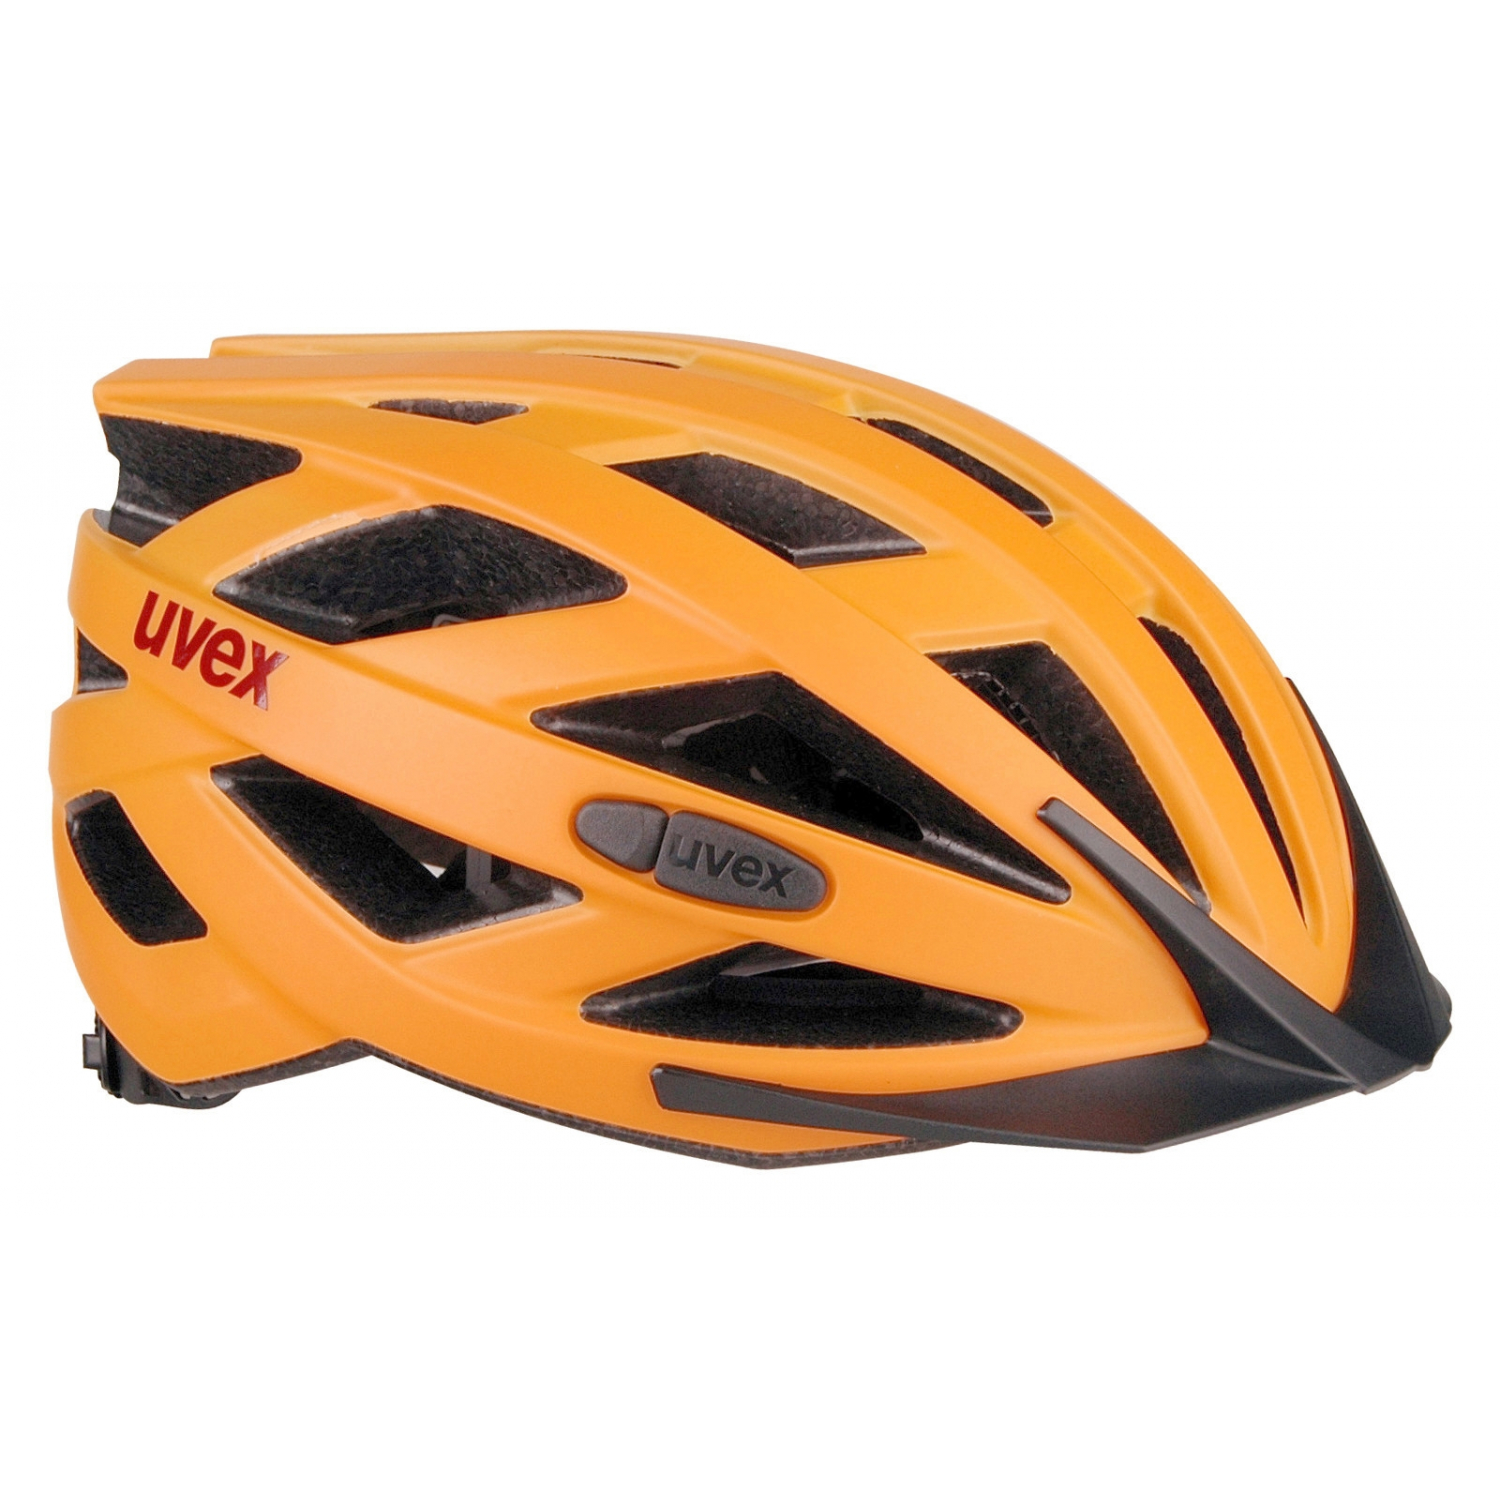 Uvex Helm I-Vo Orange-Gelb Helm 52-57cm